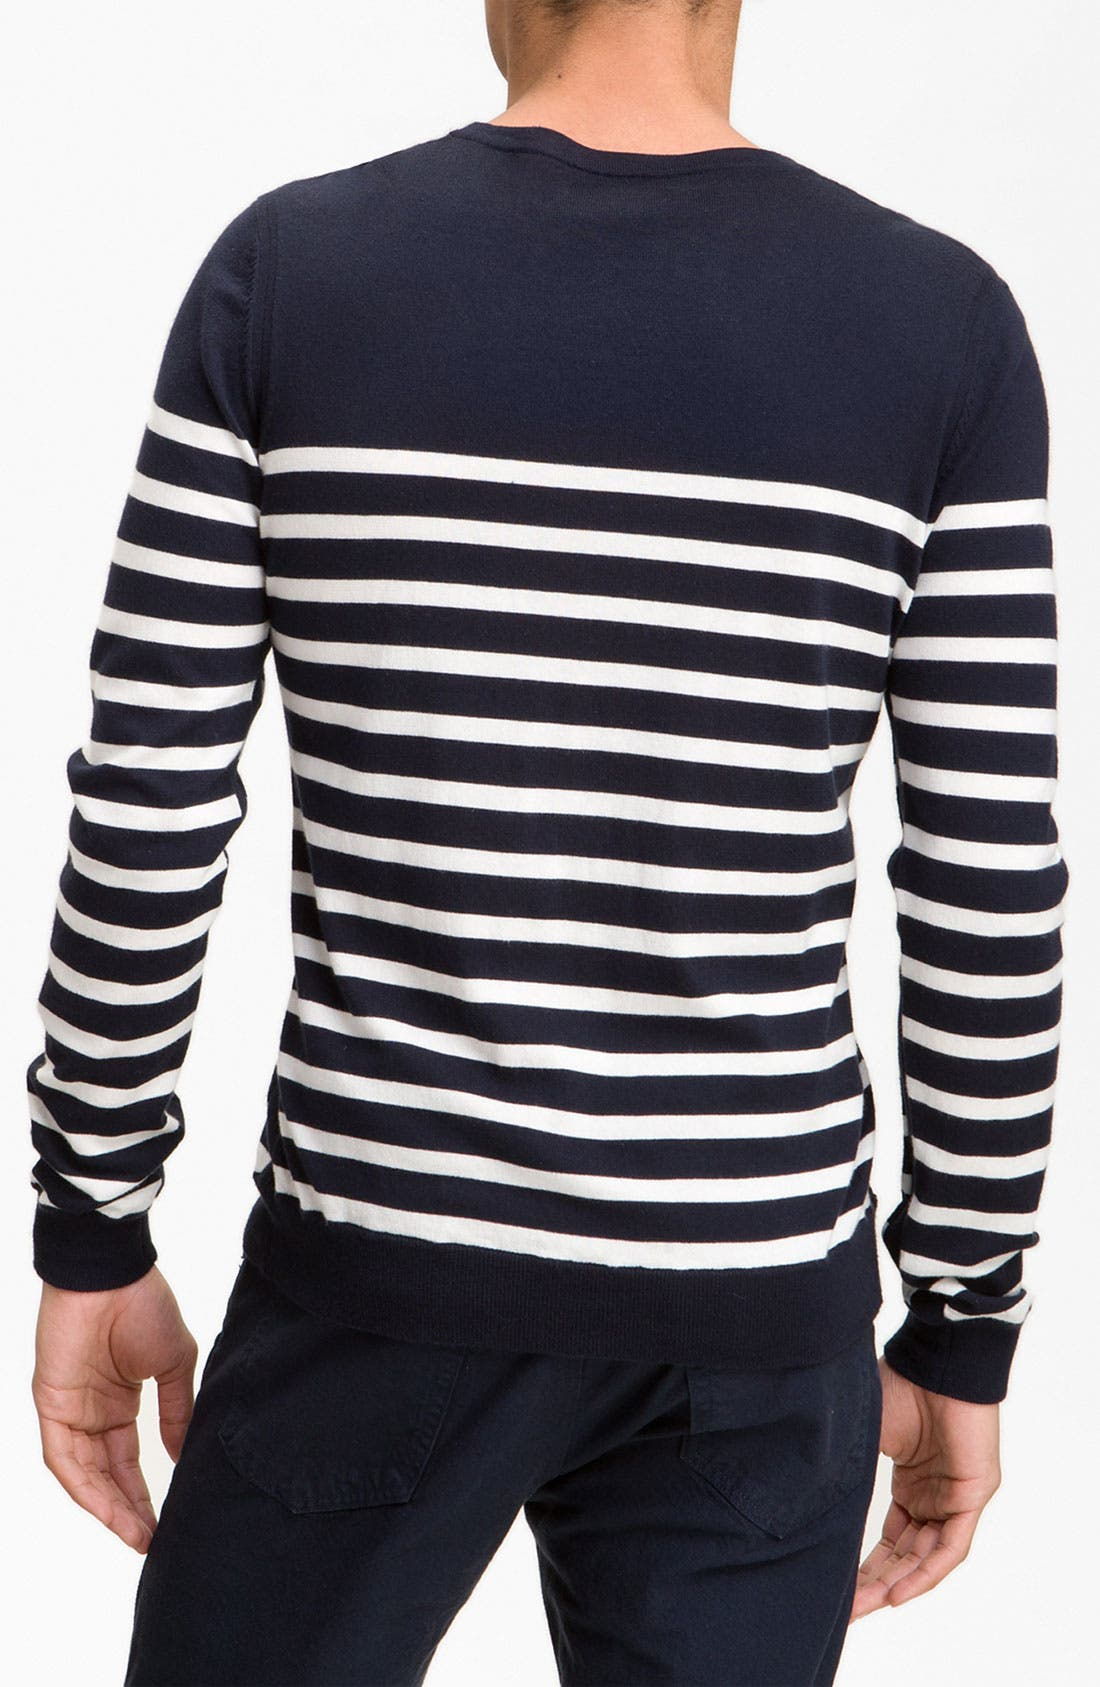 Alternate Image 2  - rag & bone 'Basque' Crewneck Sweater